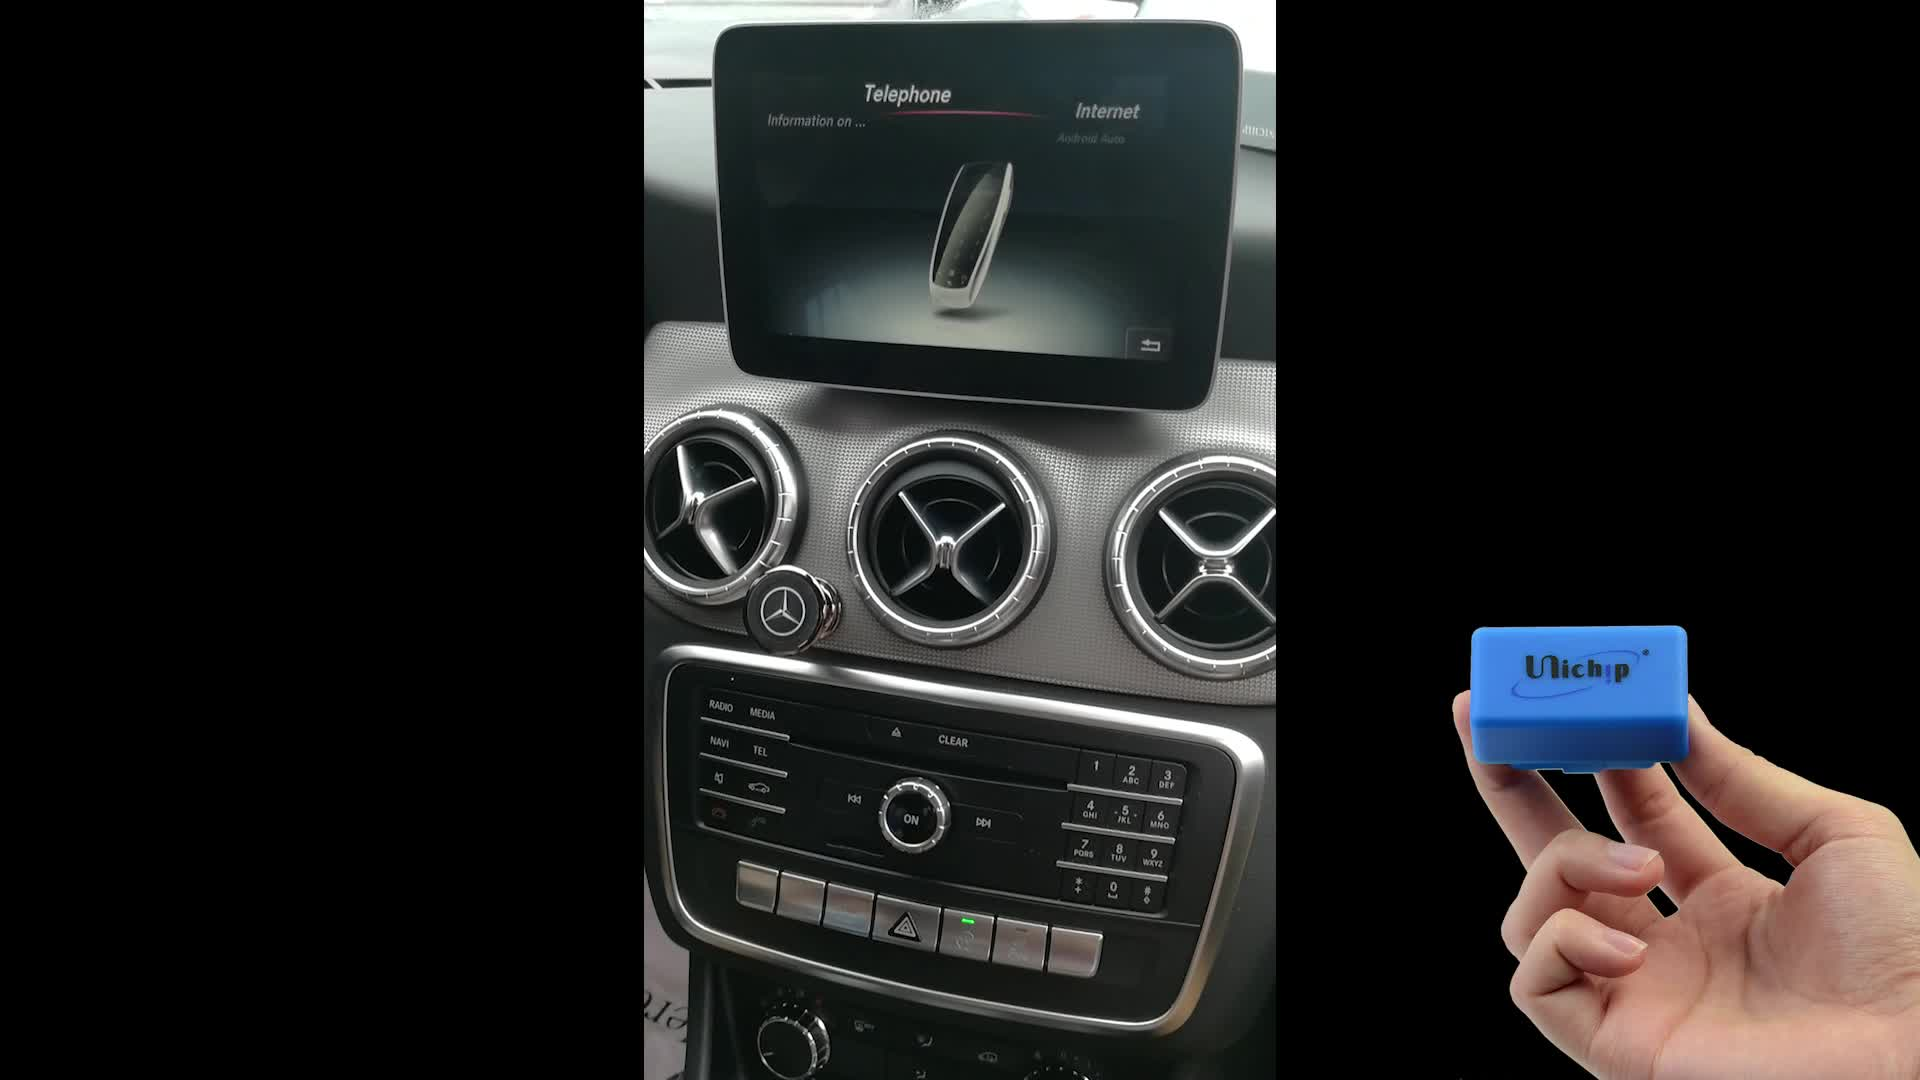 Unichip Carplay And Android Auto Activation W205 W253 Adapter Auto  Activation - Buy Unichip Carplay And Android Auto Activation,Adapter Auto